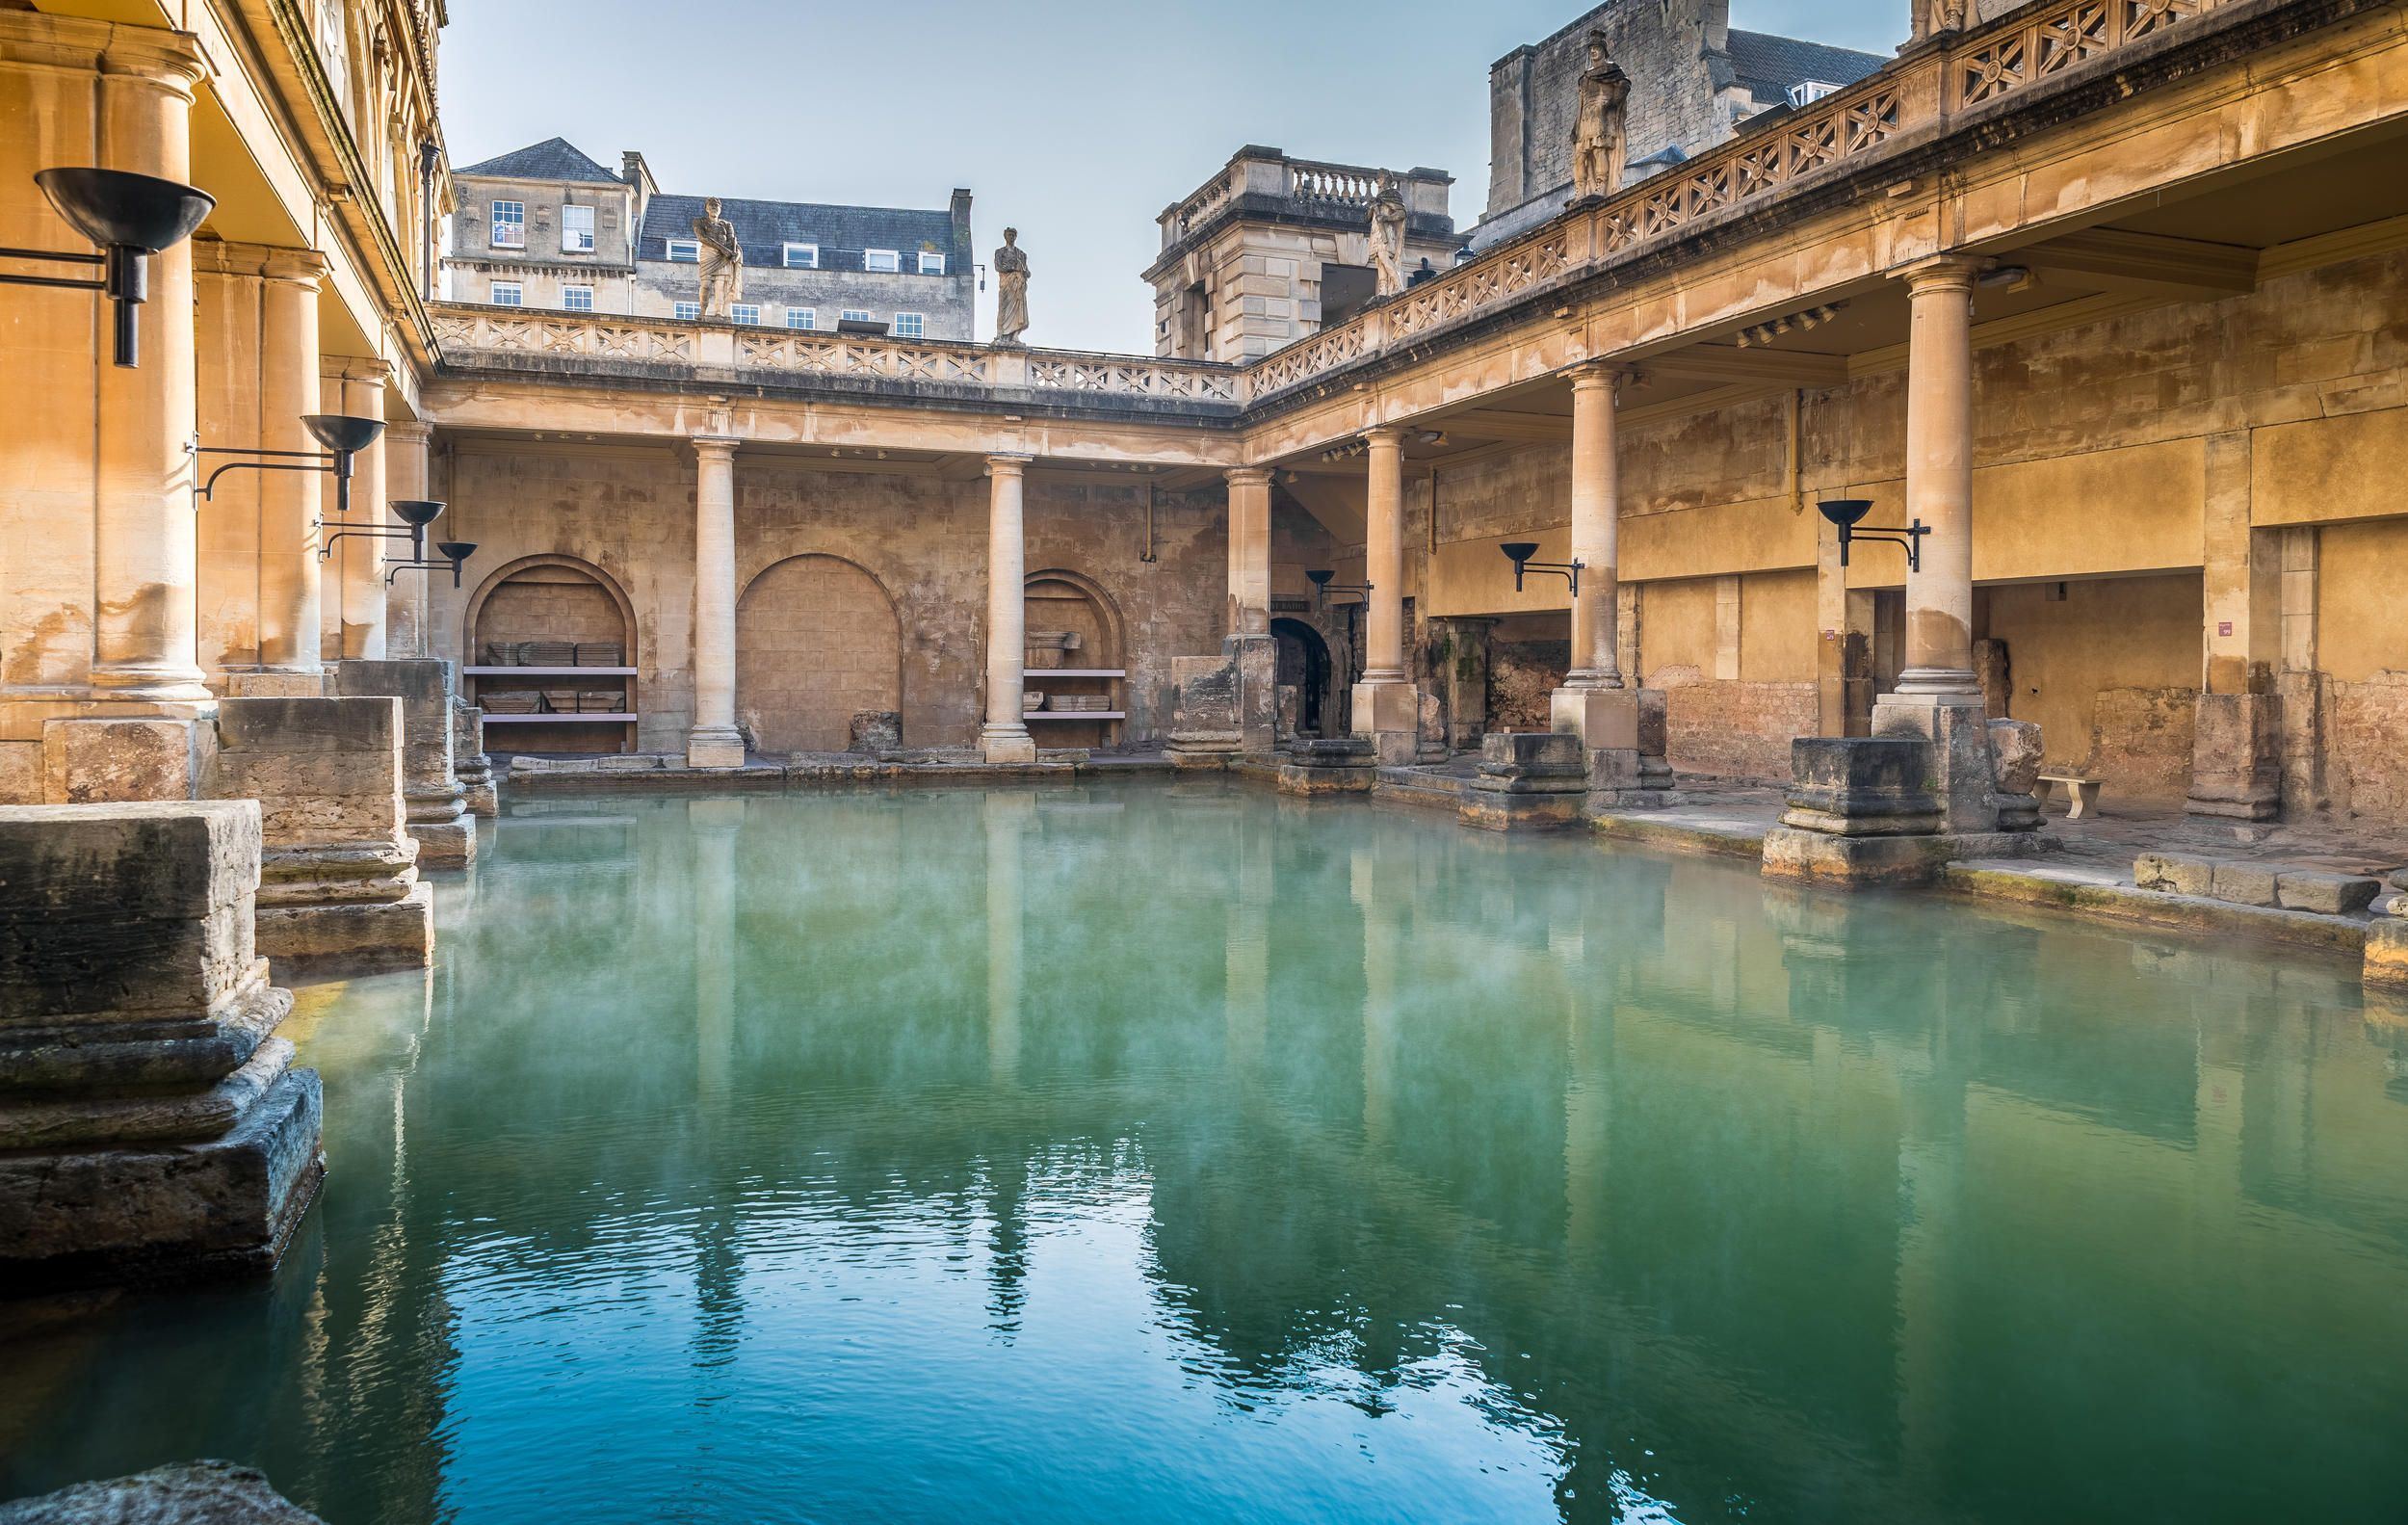 The Roman Baths are a must see